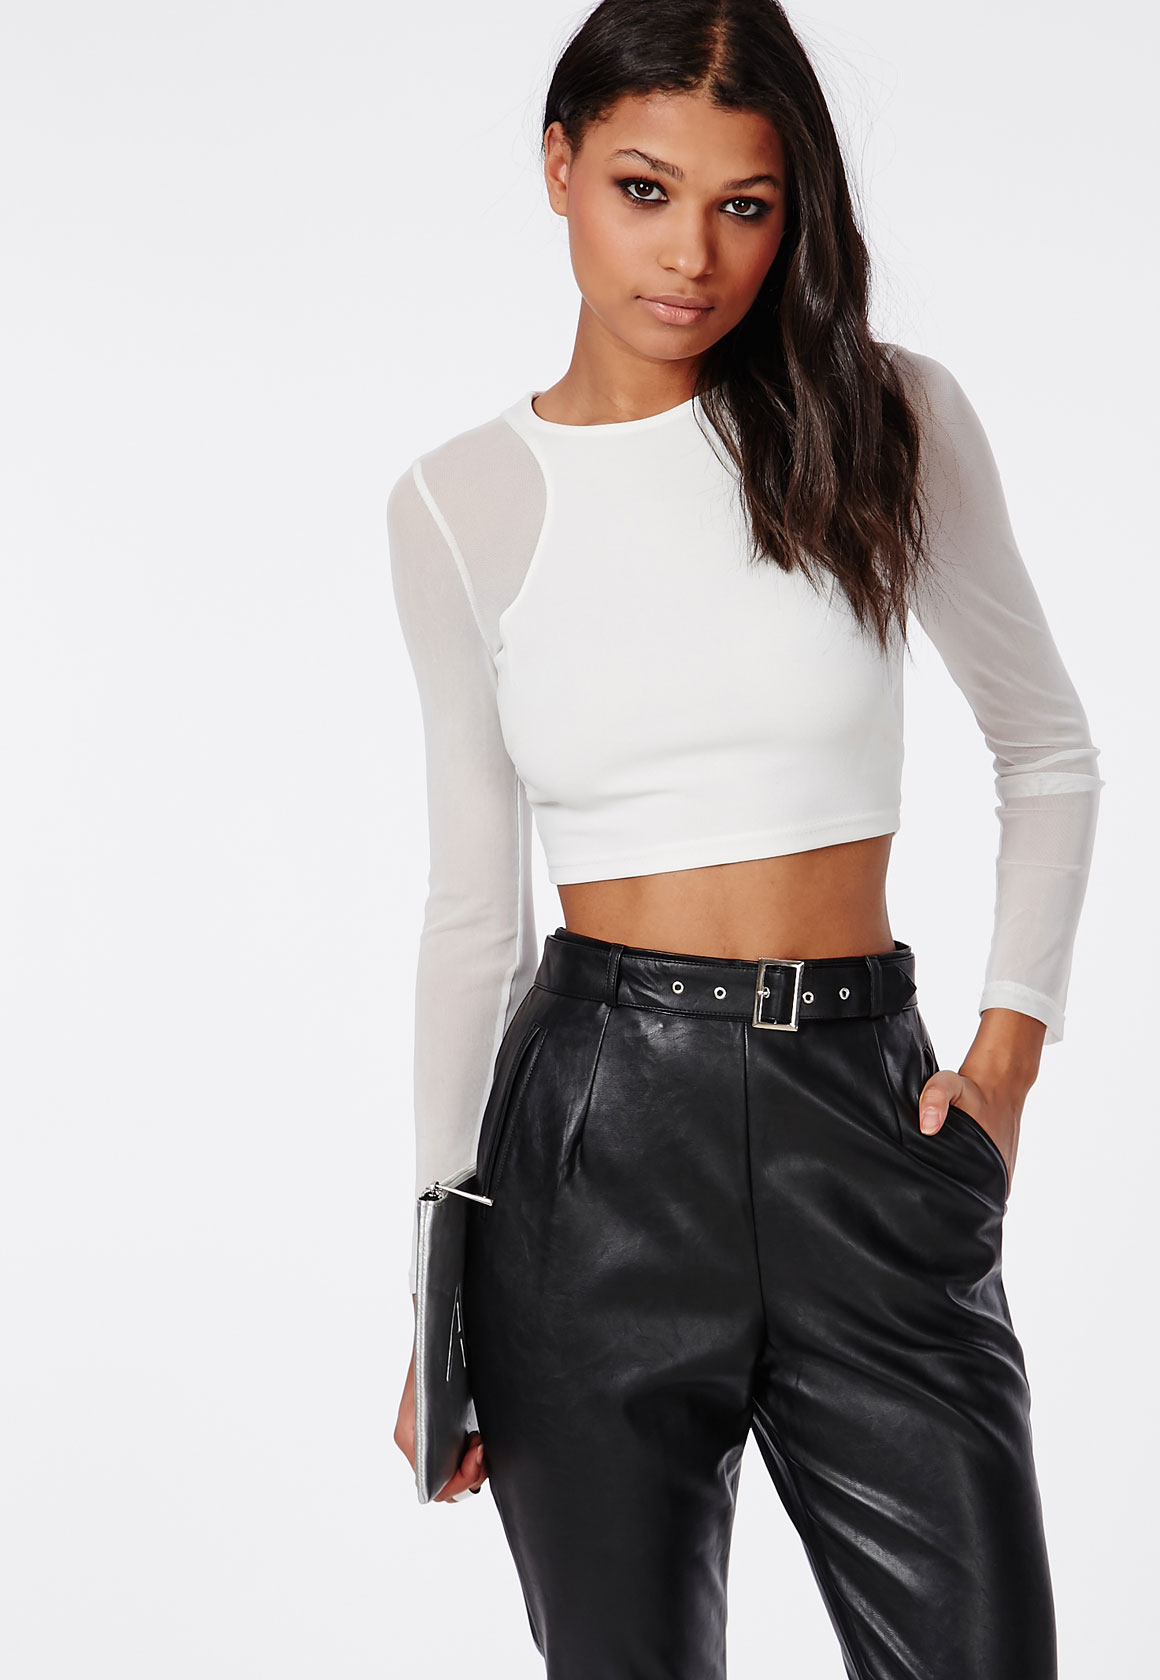 Shop Missguided online and buy Sleeve Crop Top White by Missguided